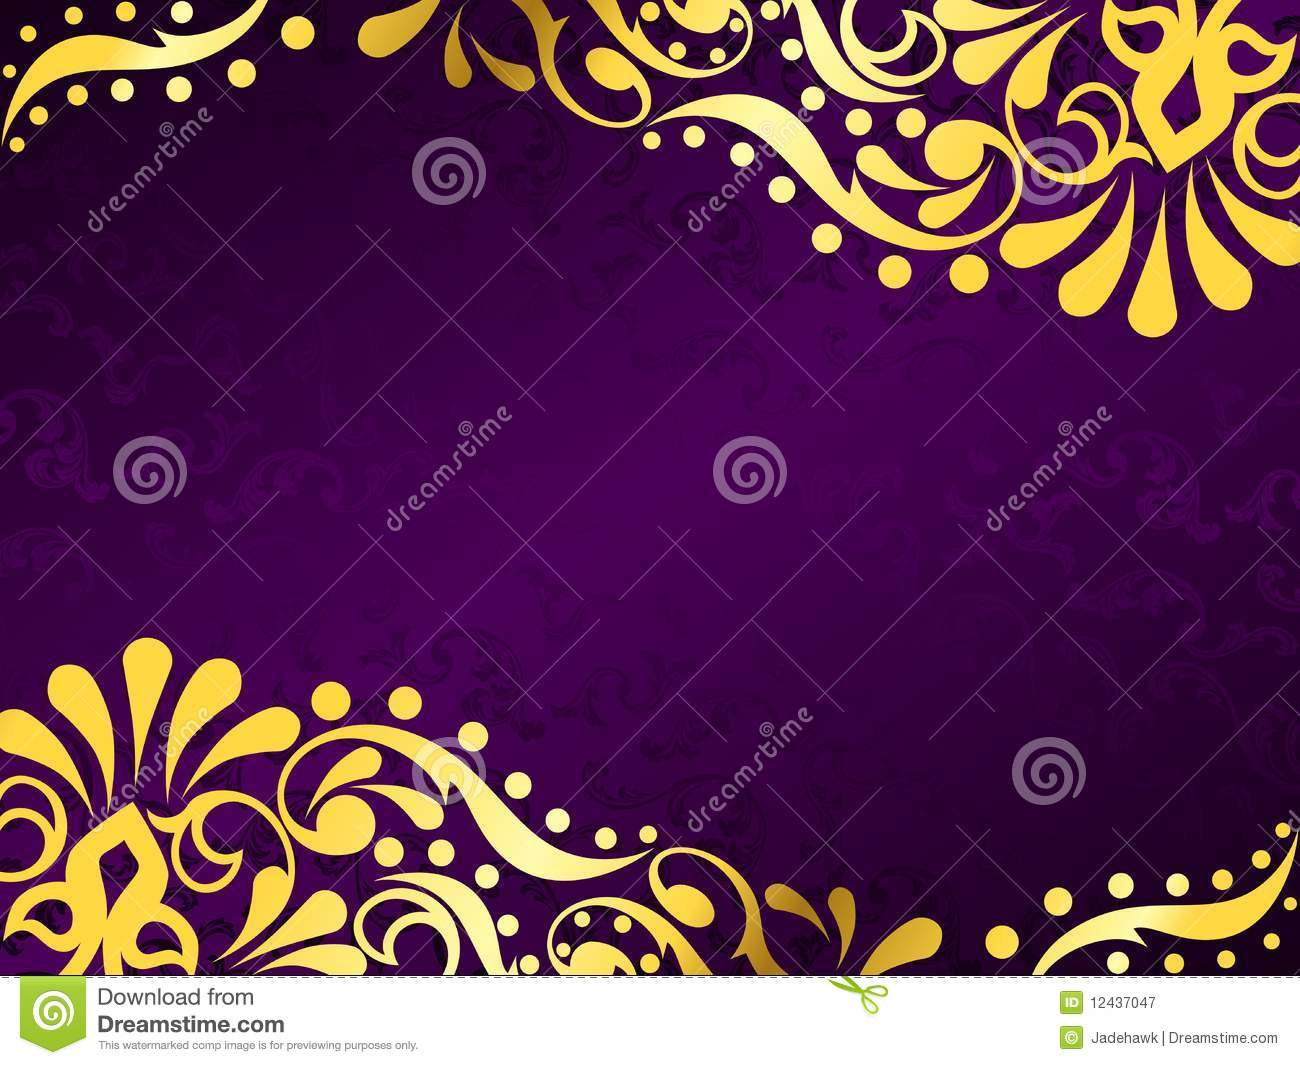 Blue purple gold abstract background design template royalty free - Purple Background With Gold Filigree Horizontal Royalty